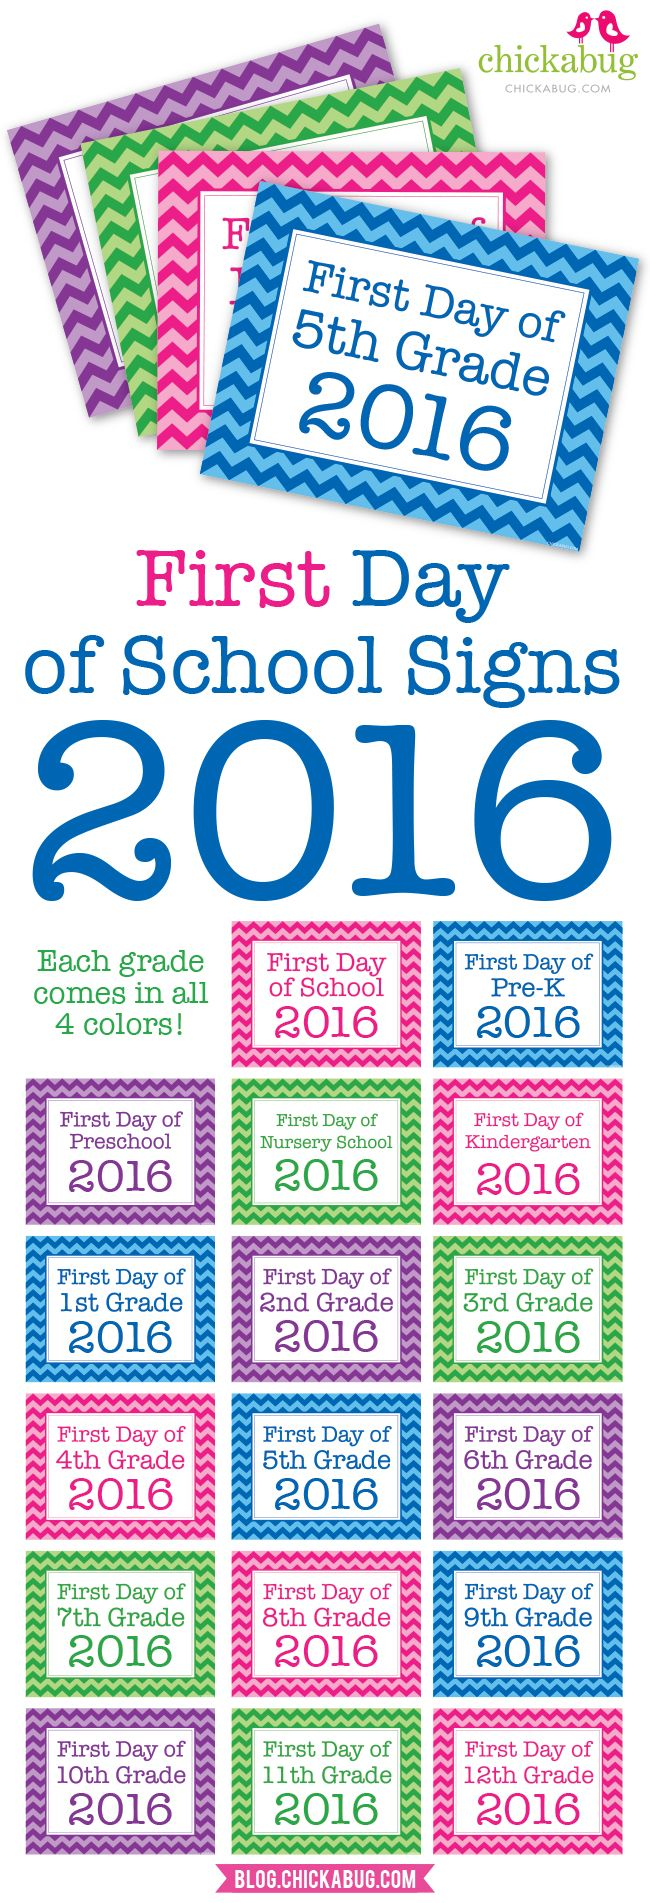 Free printable first day of school photo signs for 2016!